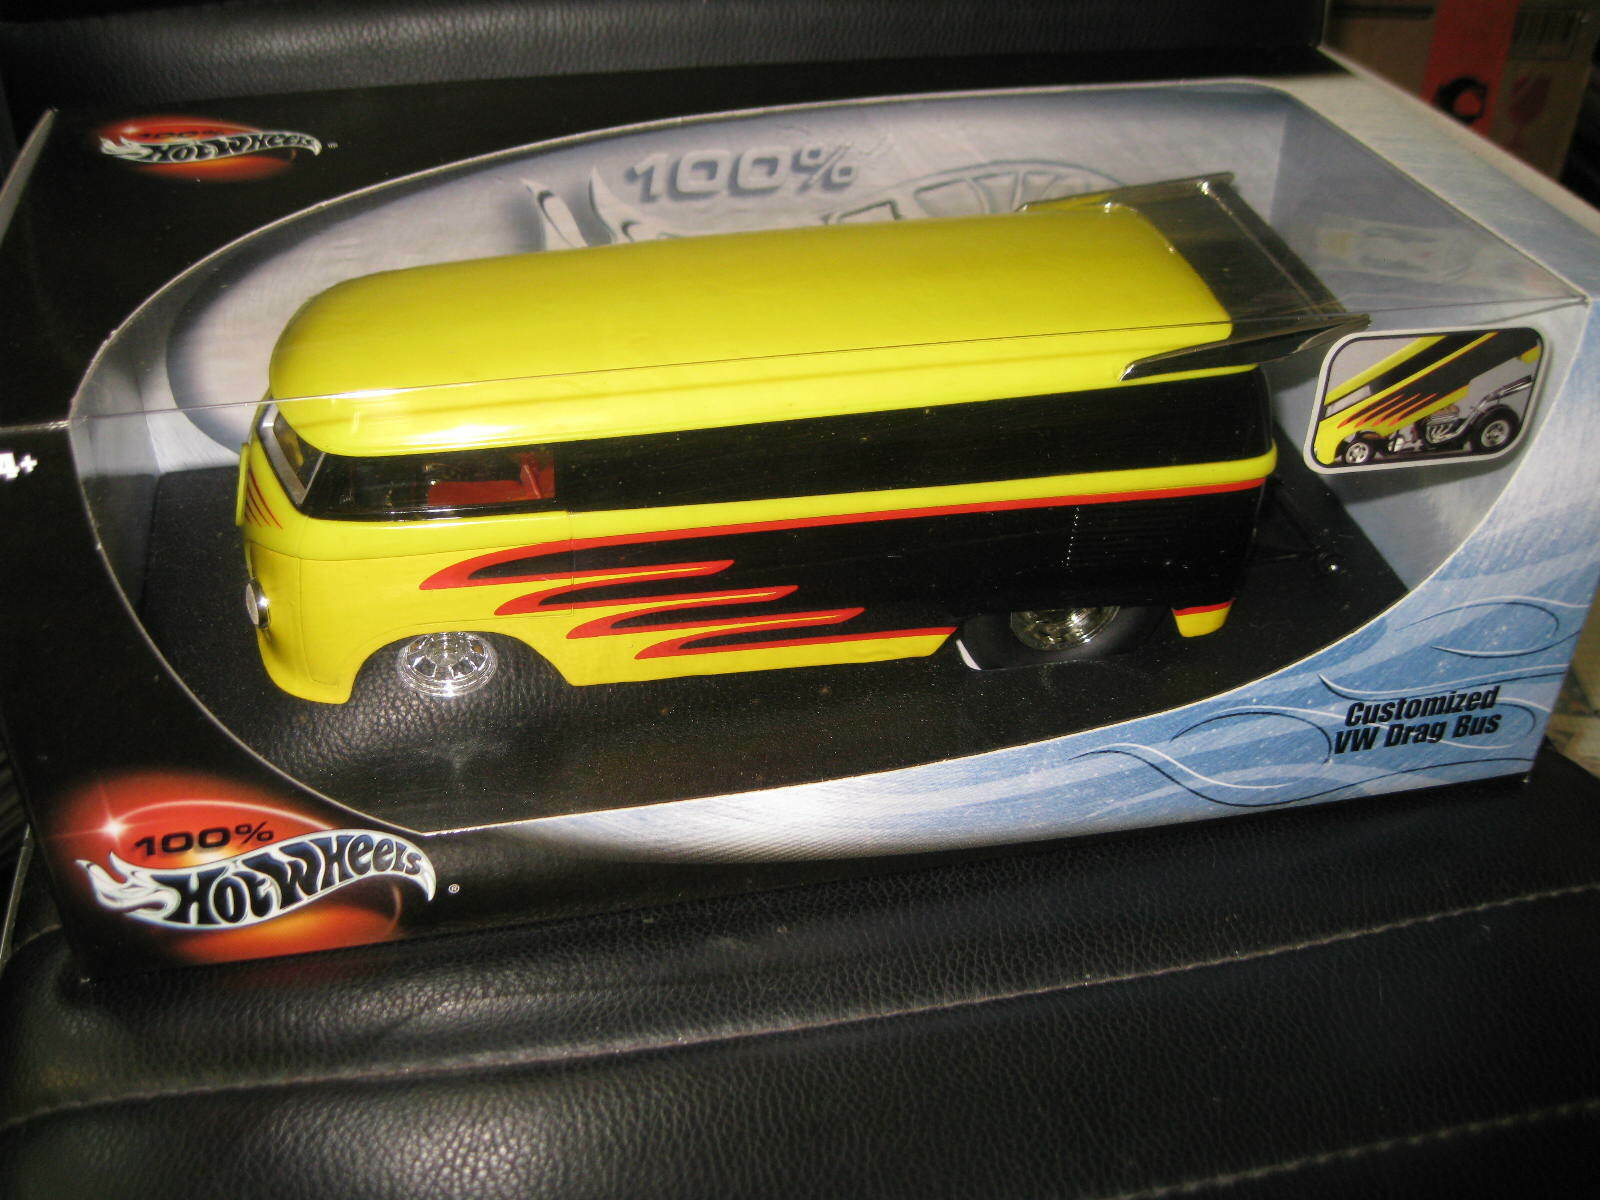 HOT WHEELS 1 18 SCALE CUSTOMIZED VW DRAG BUS KOMBI YELLOW AWESOME LOOKING MODEL